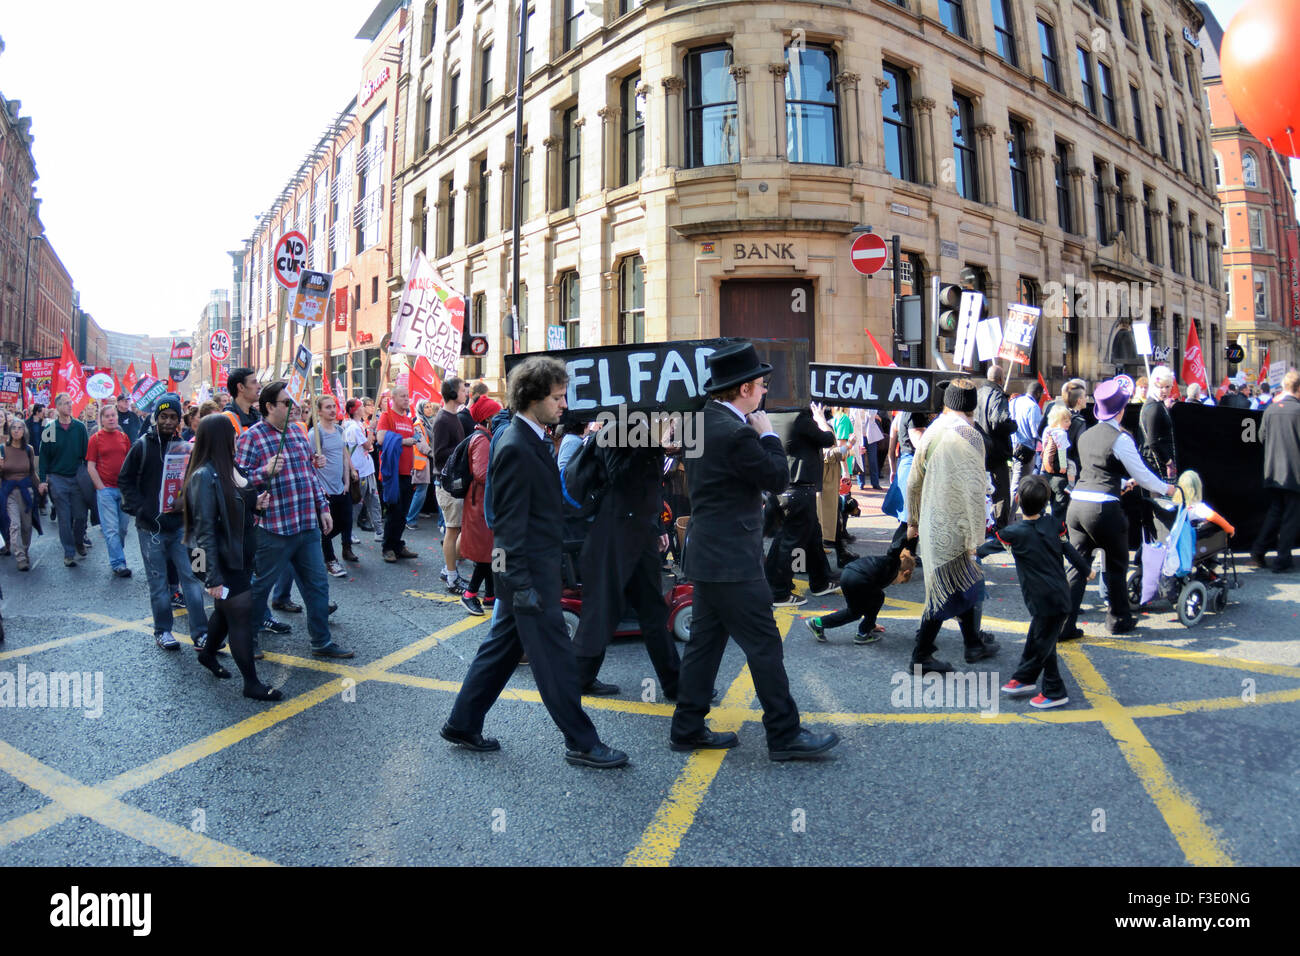 Anti-austerity march through Manchester city centre during the Conservative Party Conference. - Stock Image